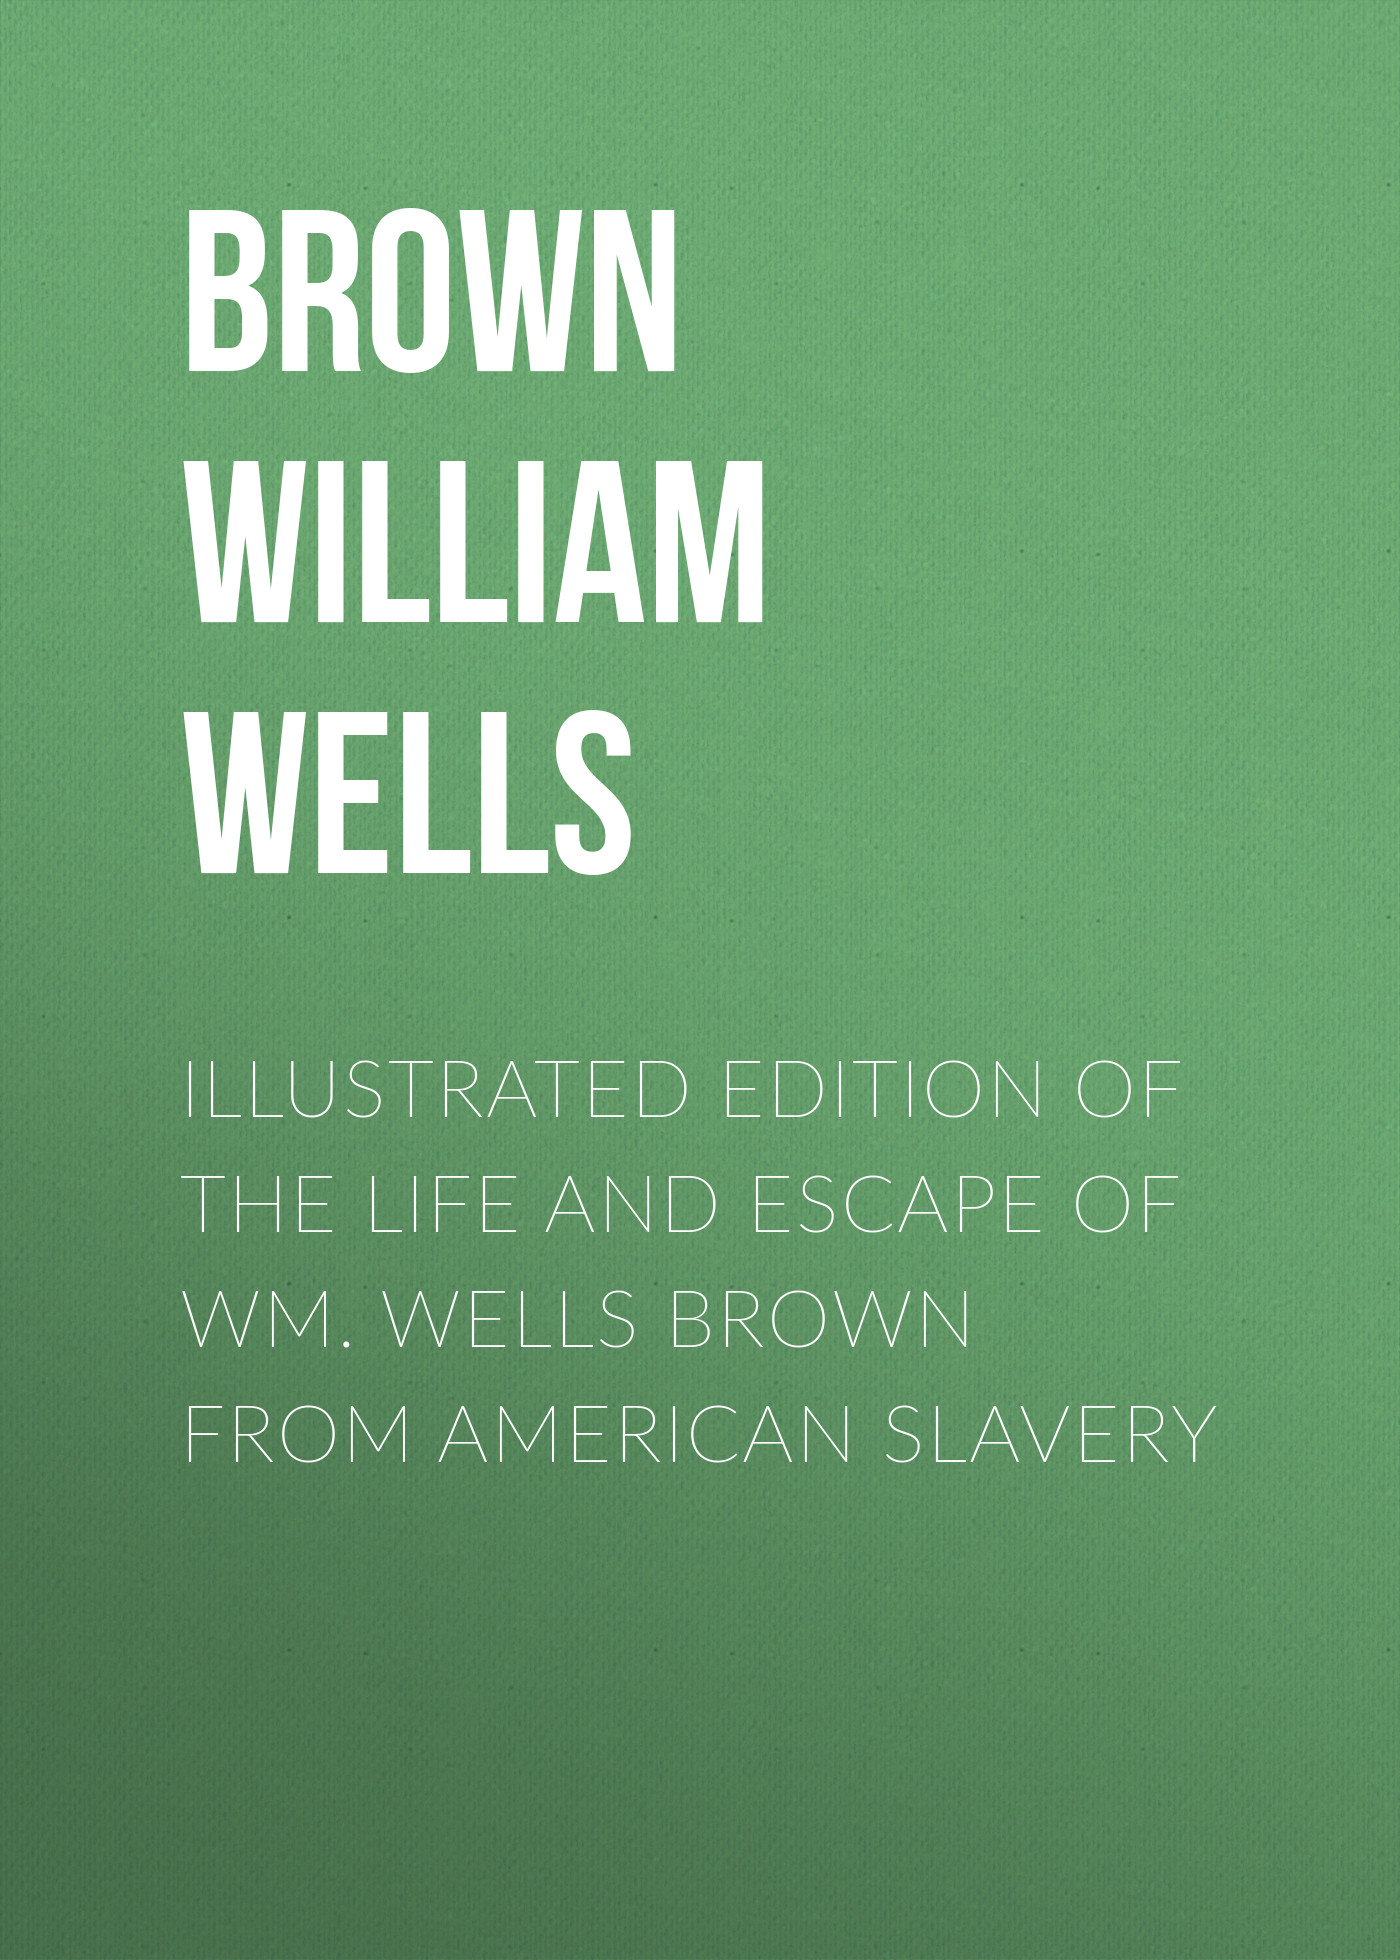 Brown William Wells Illustrated Edition of the Life and Escape of Wm. Wells Brown from American Slavery american society of transplantation primer on transplantation isbn 9781444391756